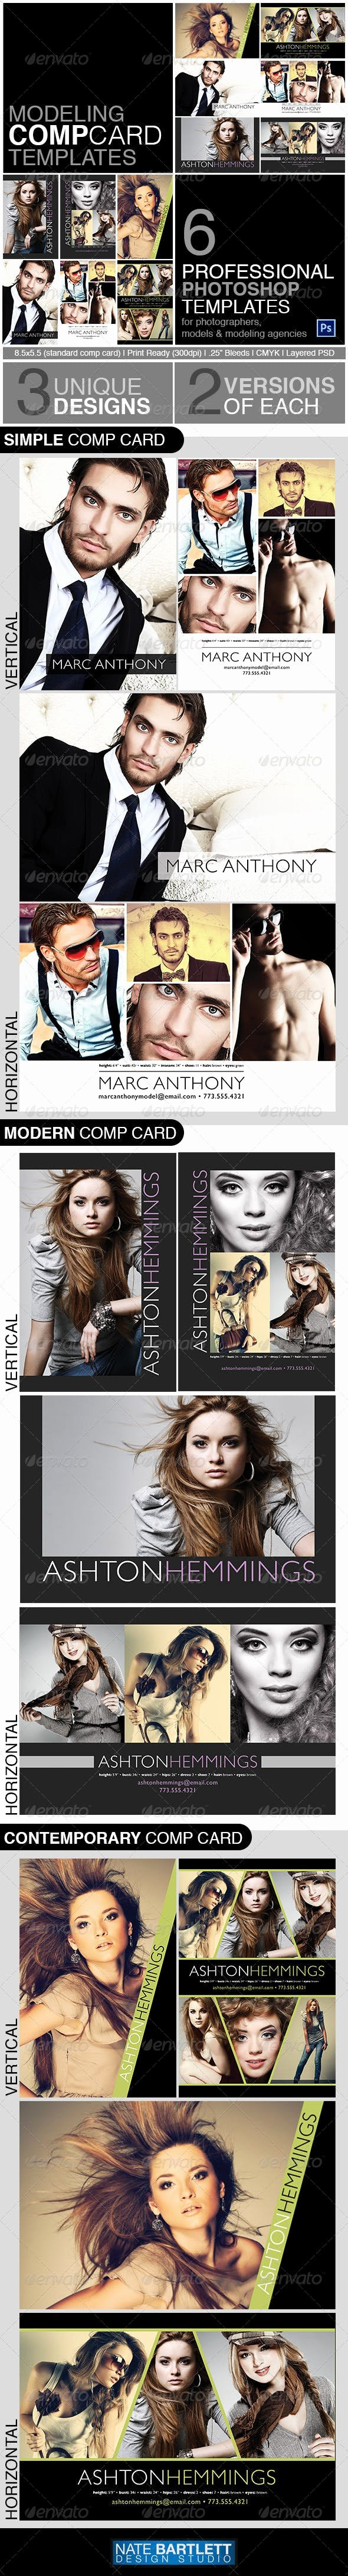 Model Comp Card Template Free Awesome Model P Card Template Kit by Natedilli